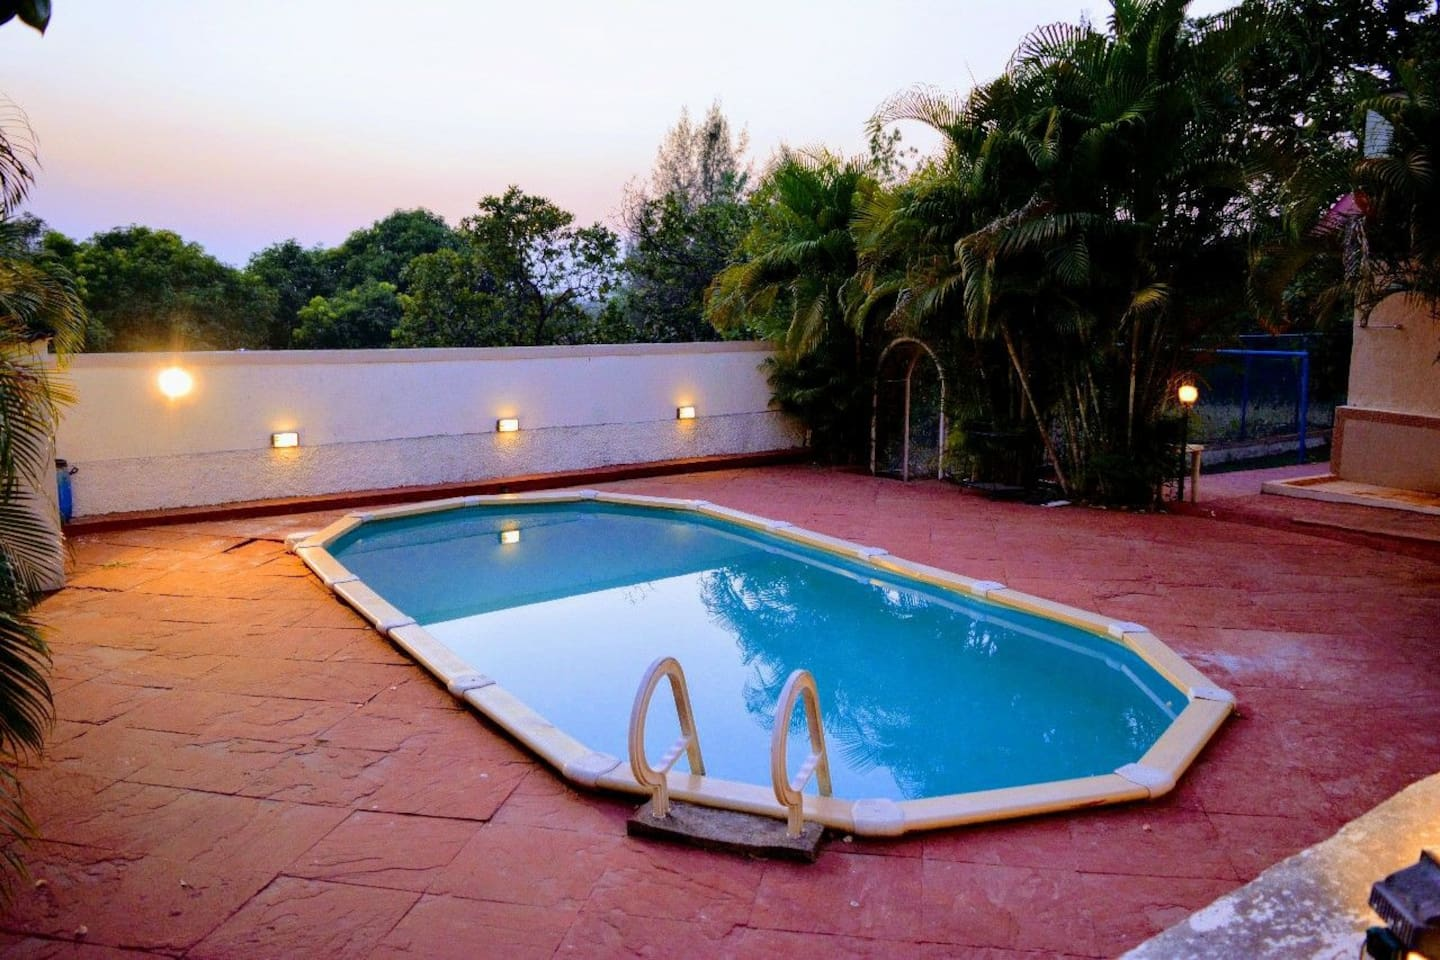 Swimming pool during sunset